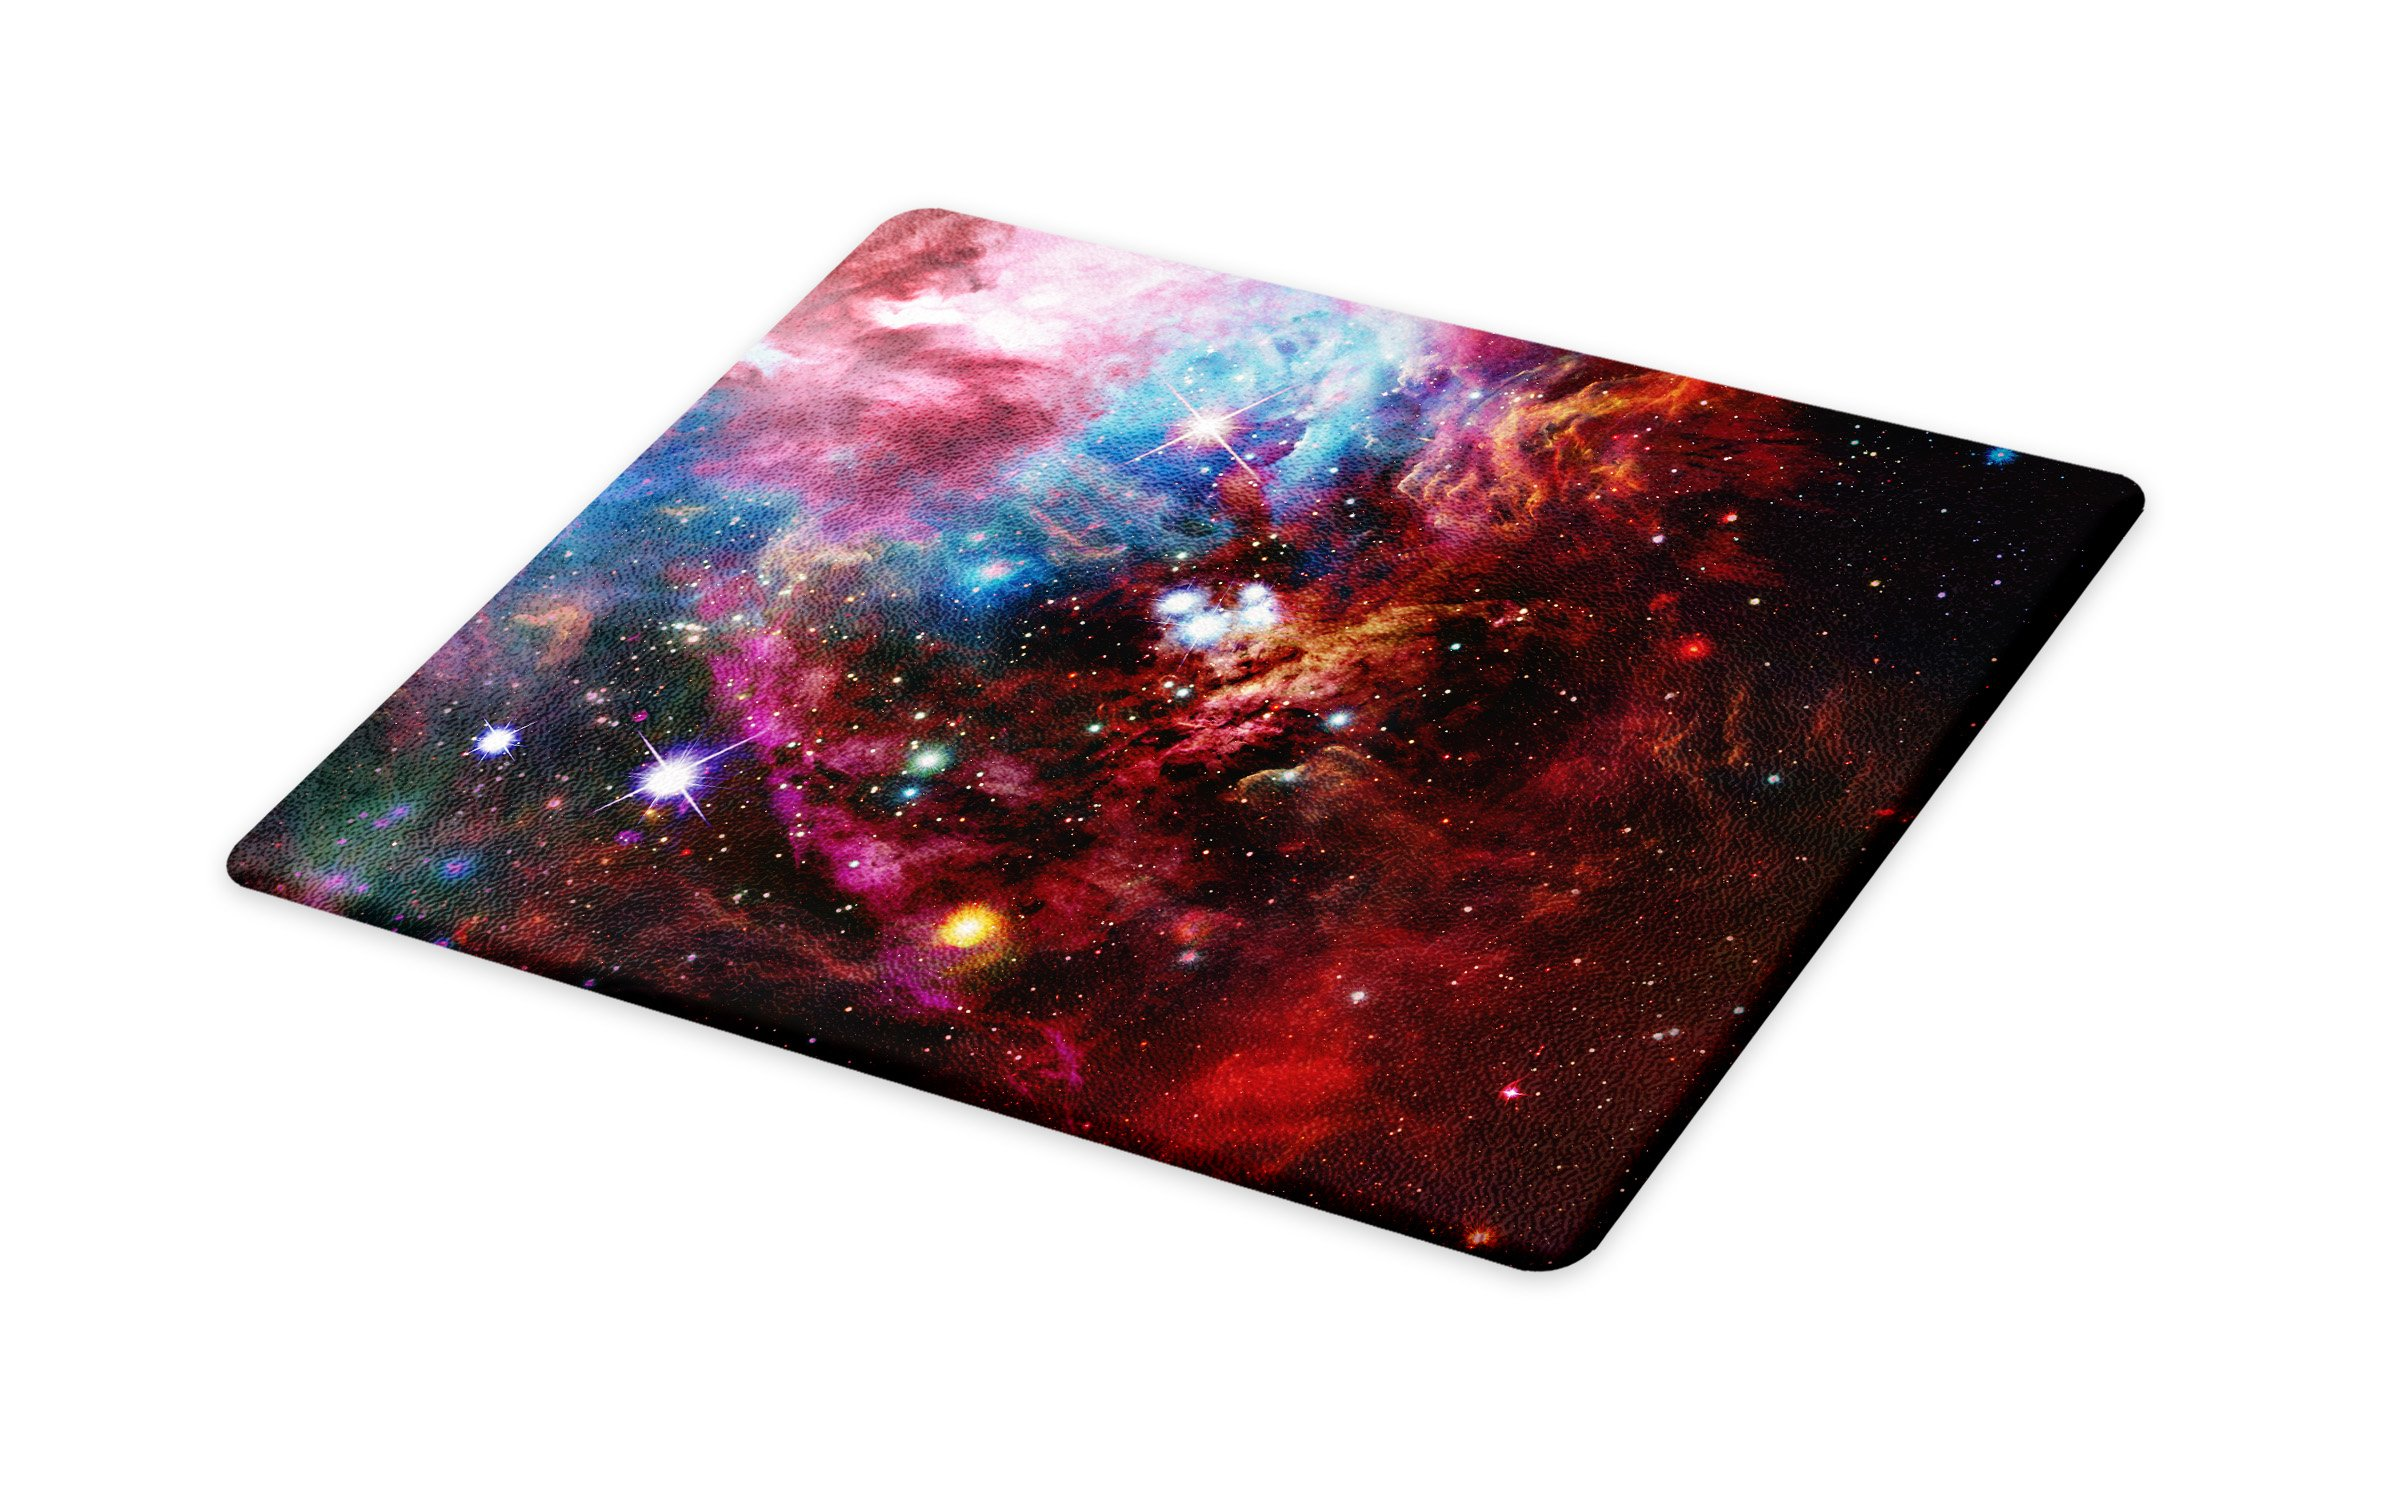 Lunarable Outer Space Cutting Board, Space Nebula with Cluster in The Cosmos Universe Galaxy Solar Celestial Zone, Decorative Tempered Glass Cutting and Serving Board, Large Size, Teal Red Pink